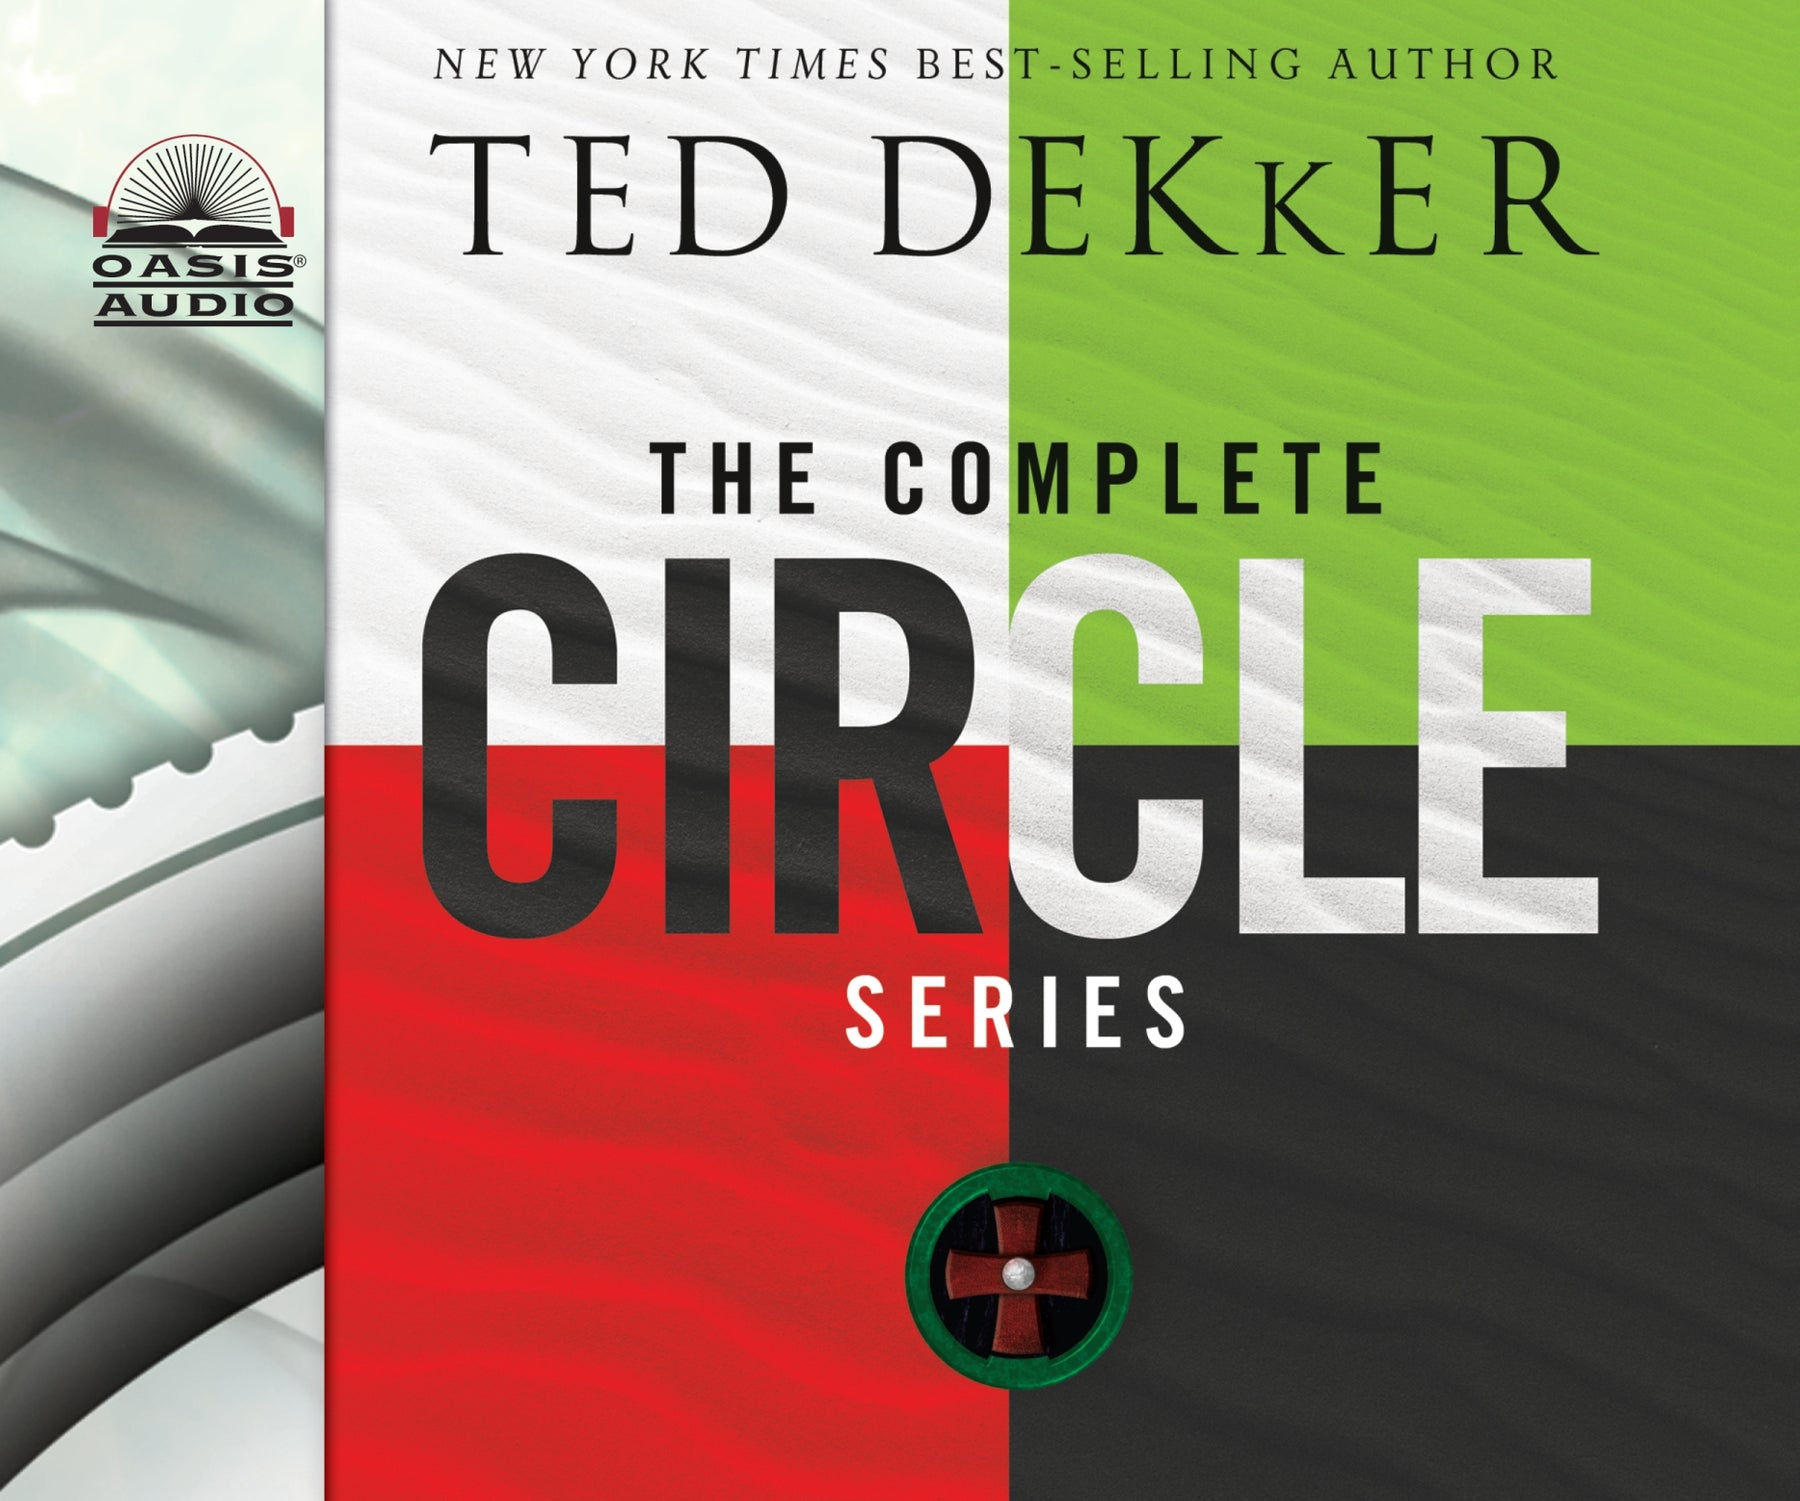 The Complete Circle Series